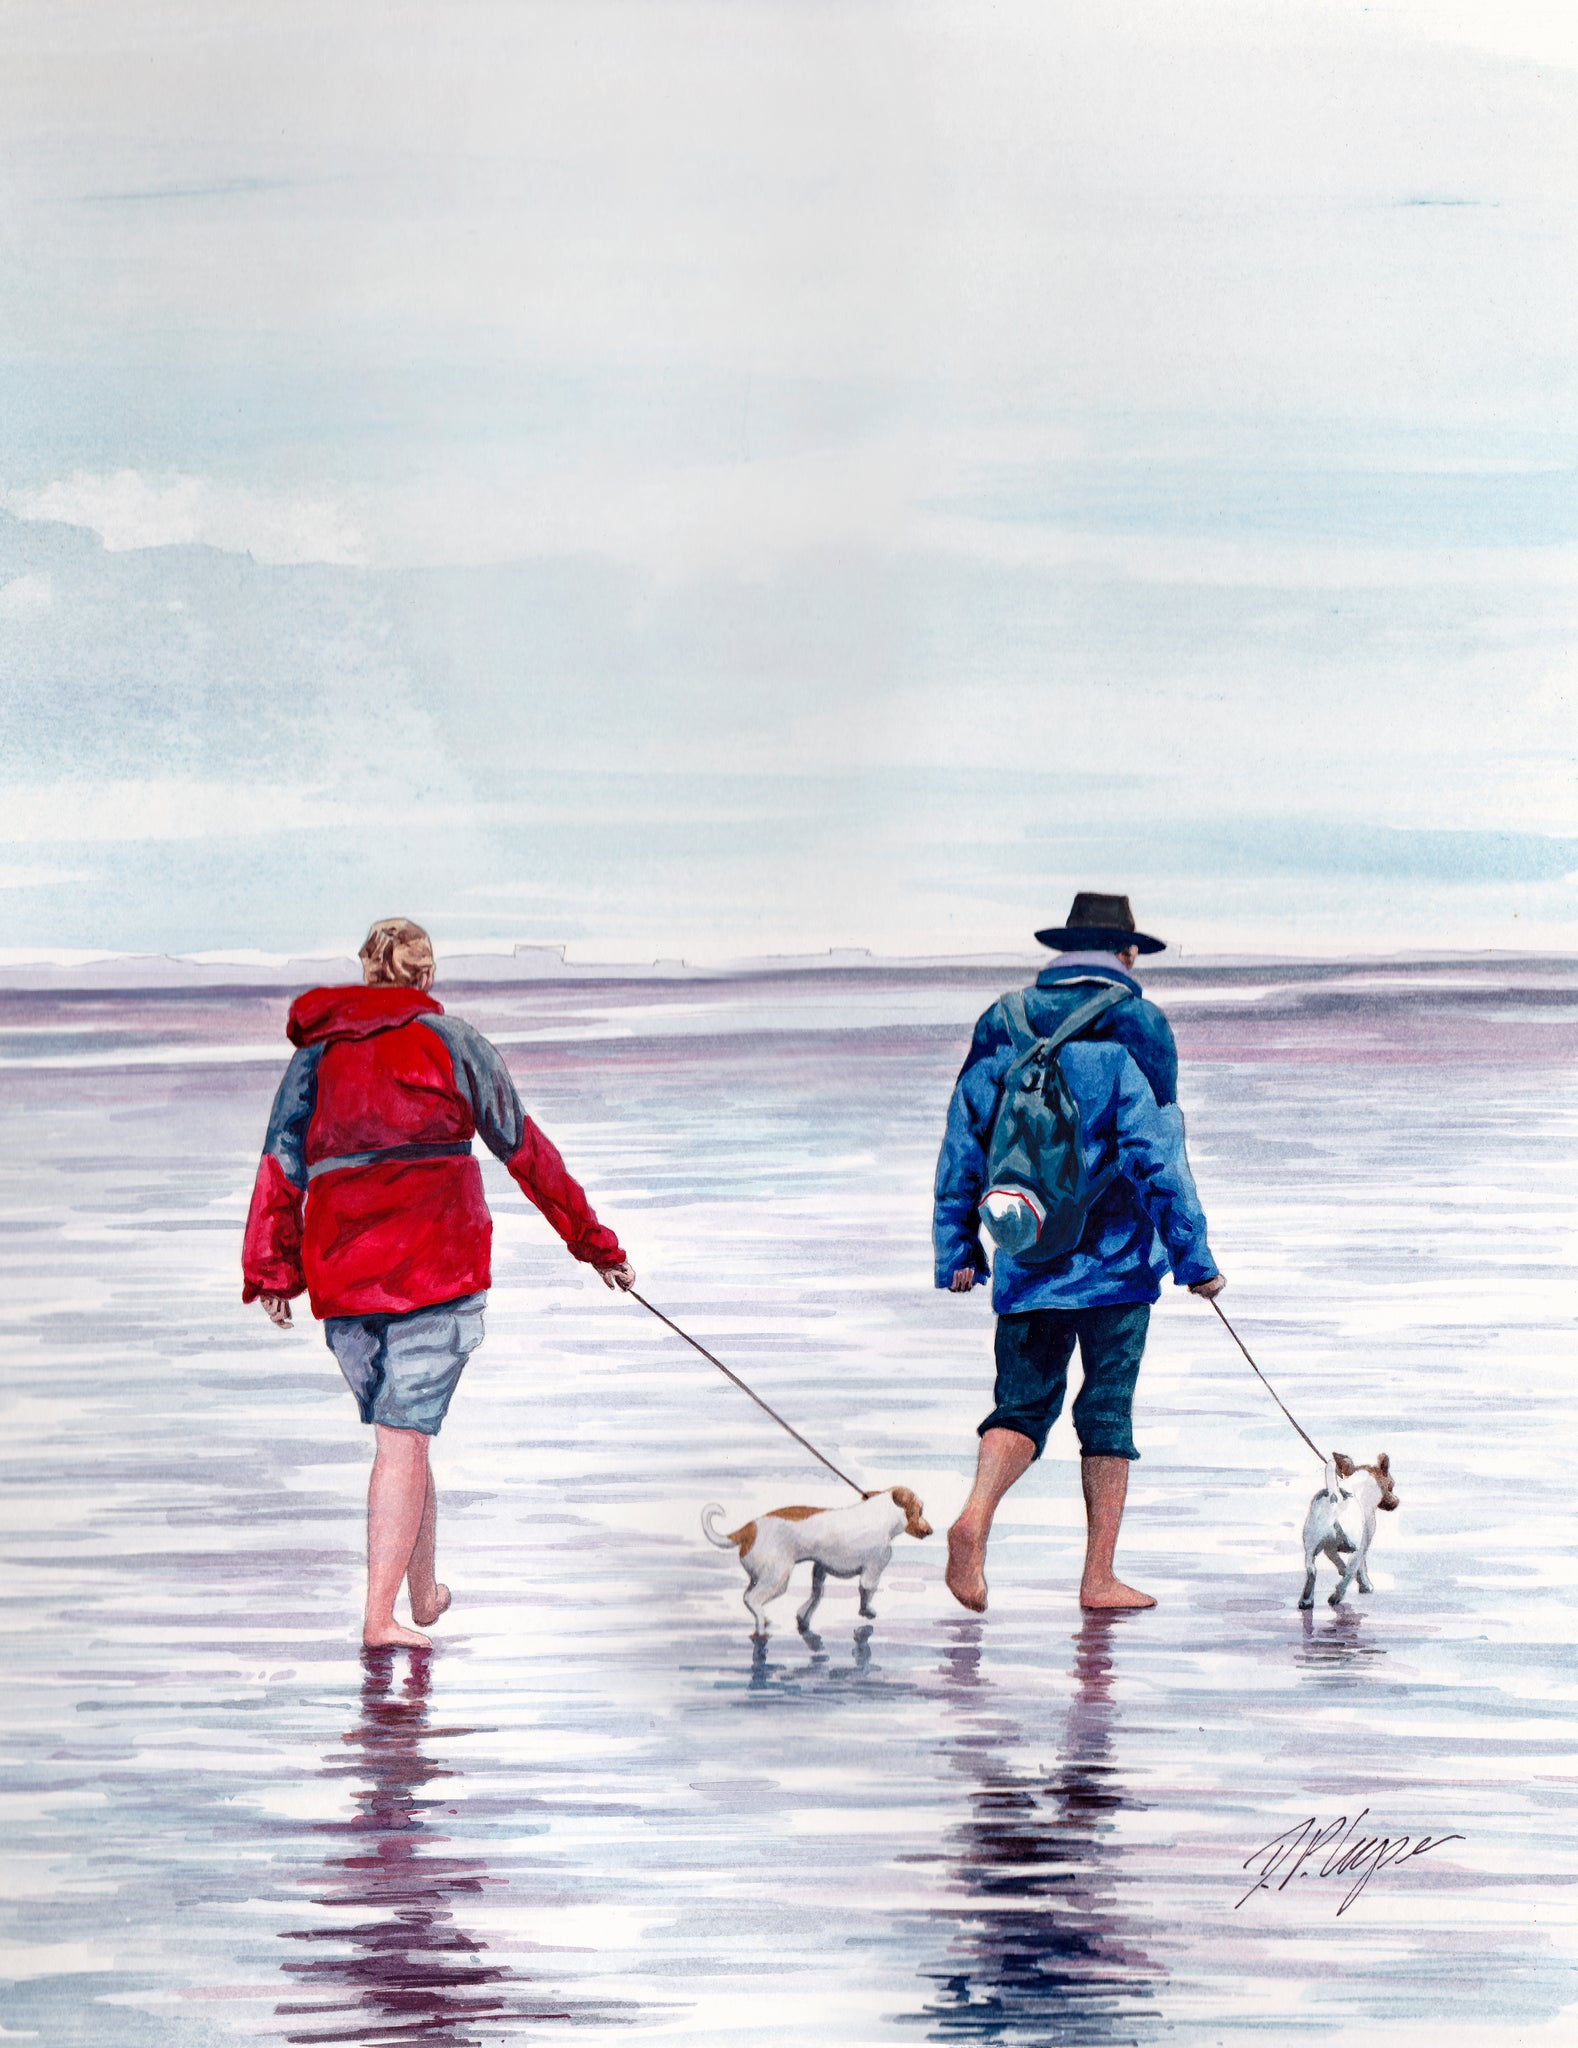 BAY WALK - ORIGINAL PAINTING